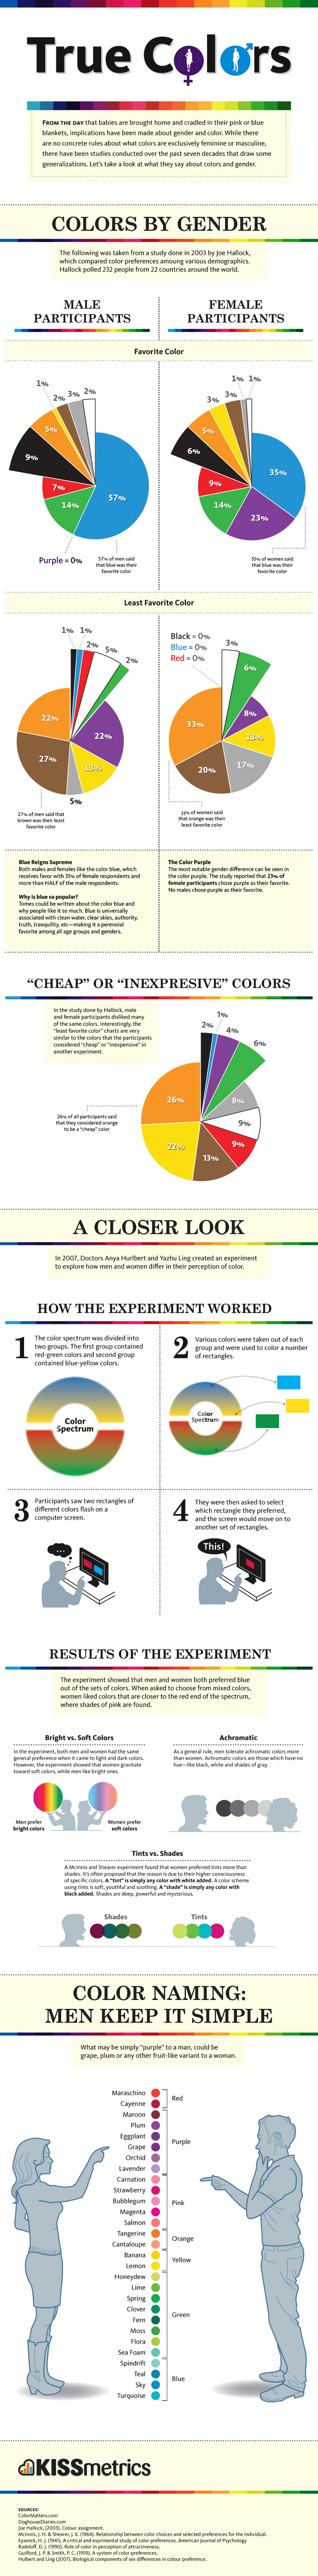 Male Vs Female Color Perceptions And Preferences (Infographic)